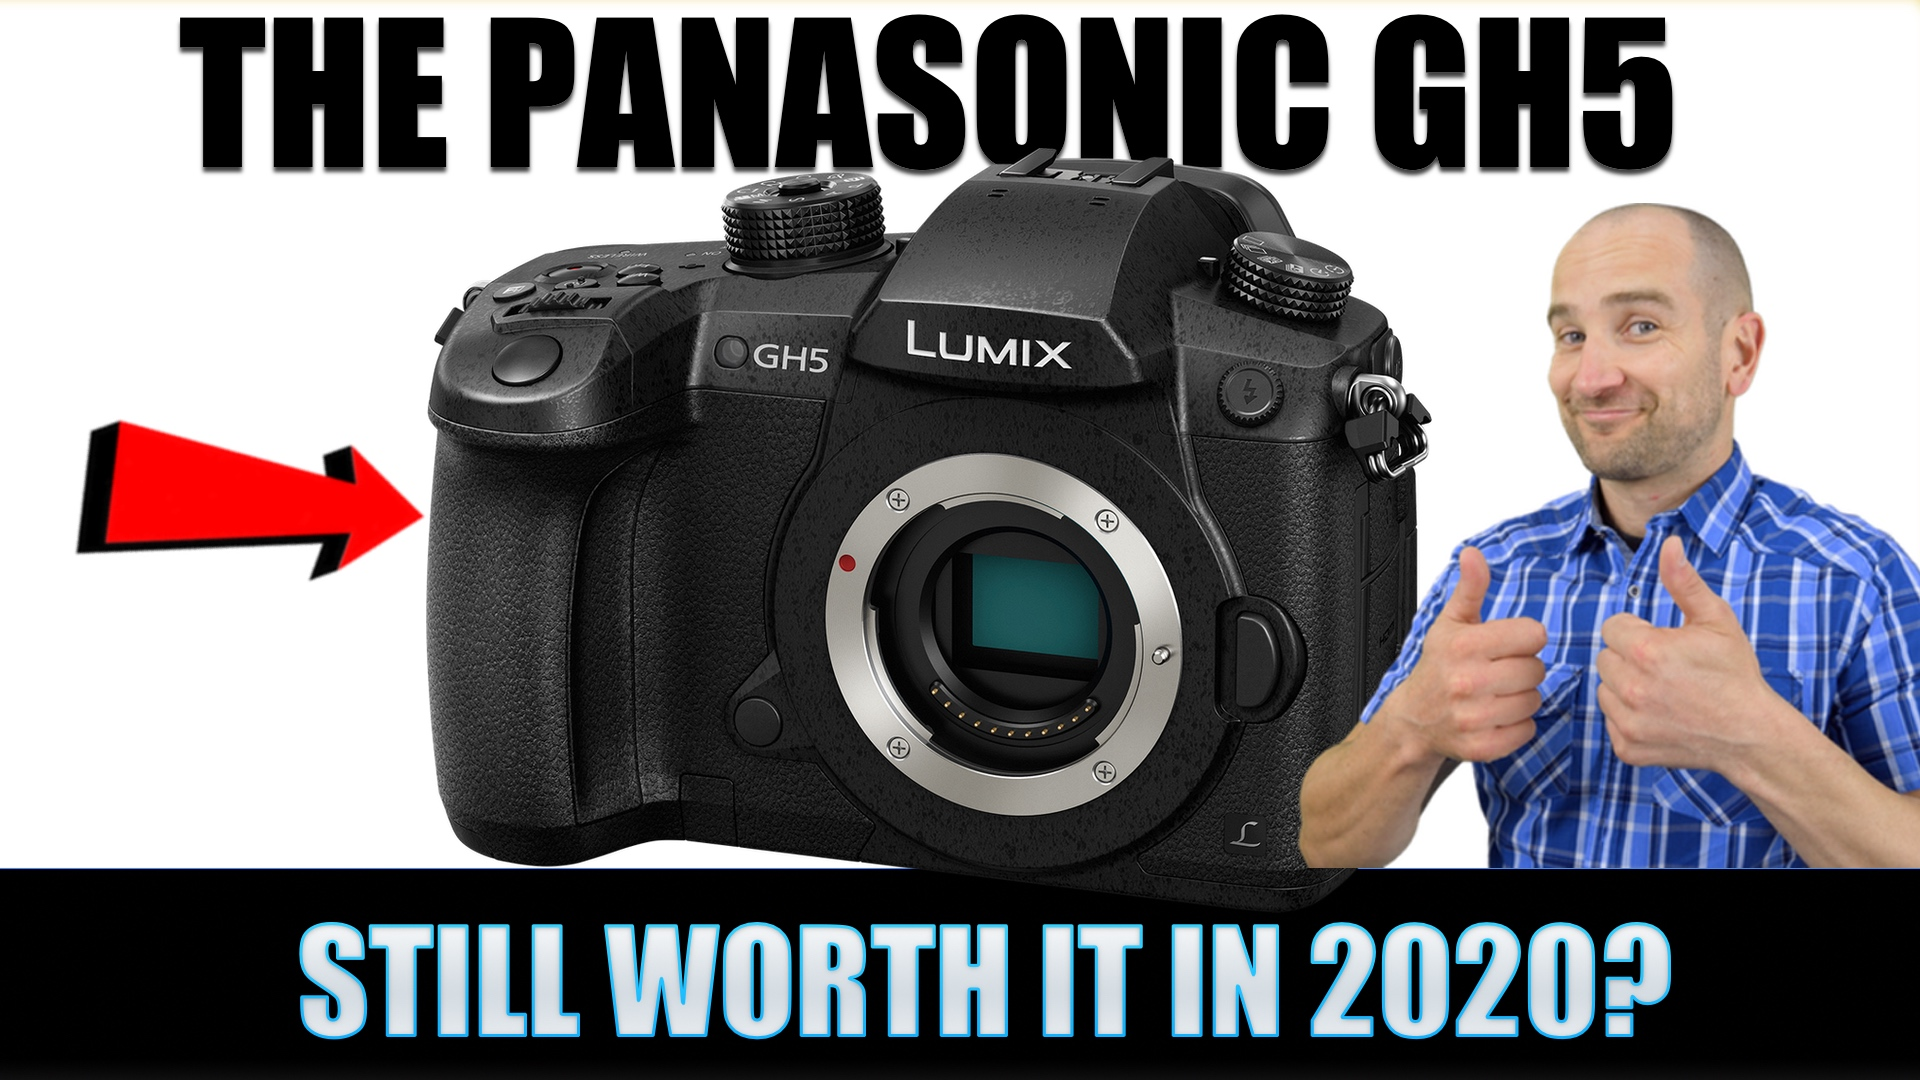 Panasonic GH5 in 2020